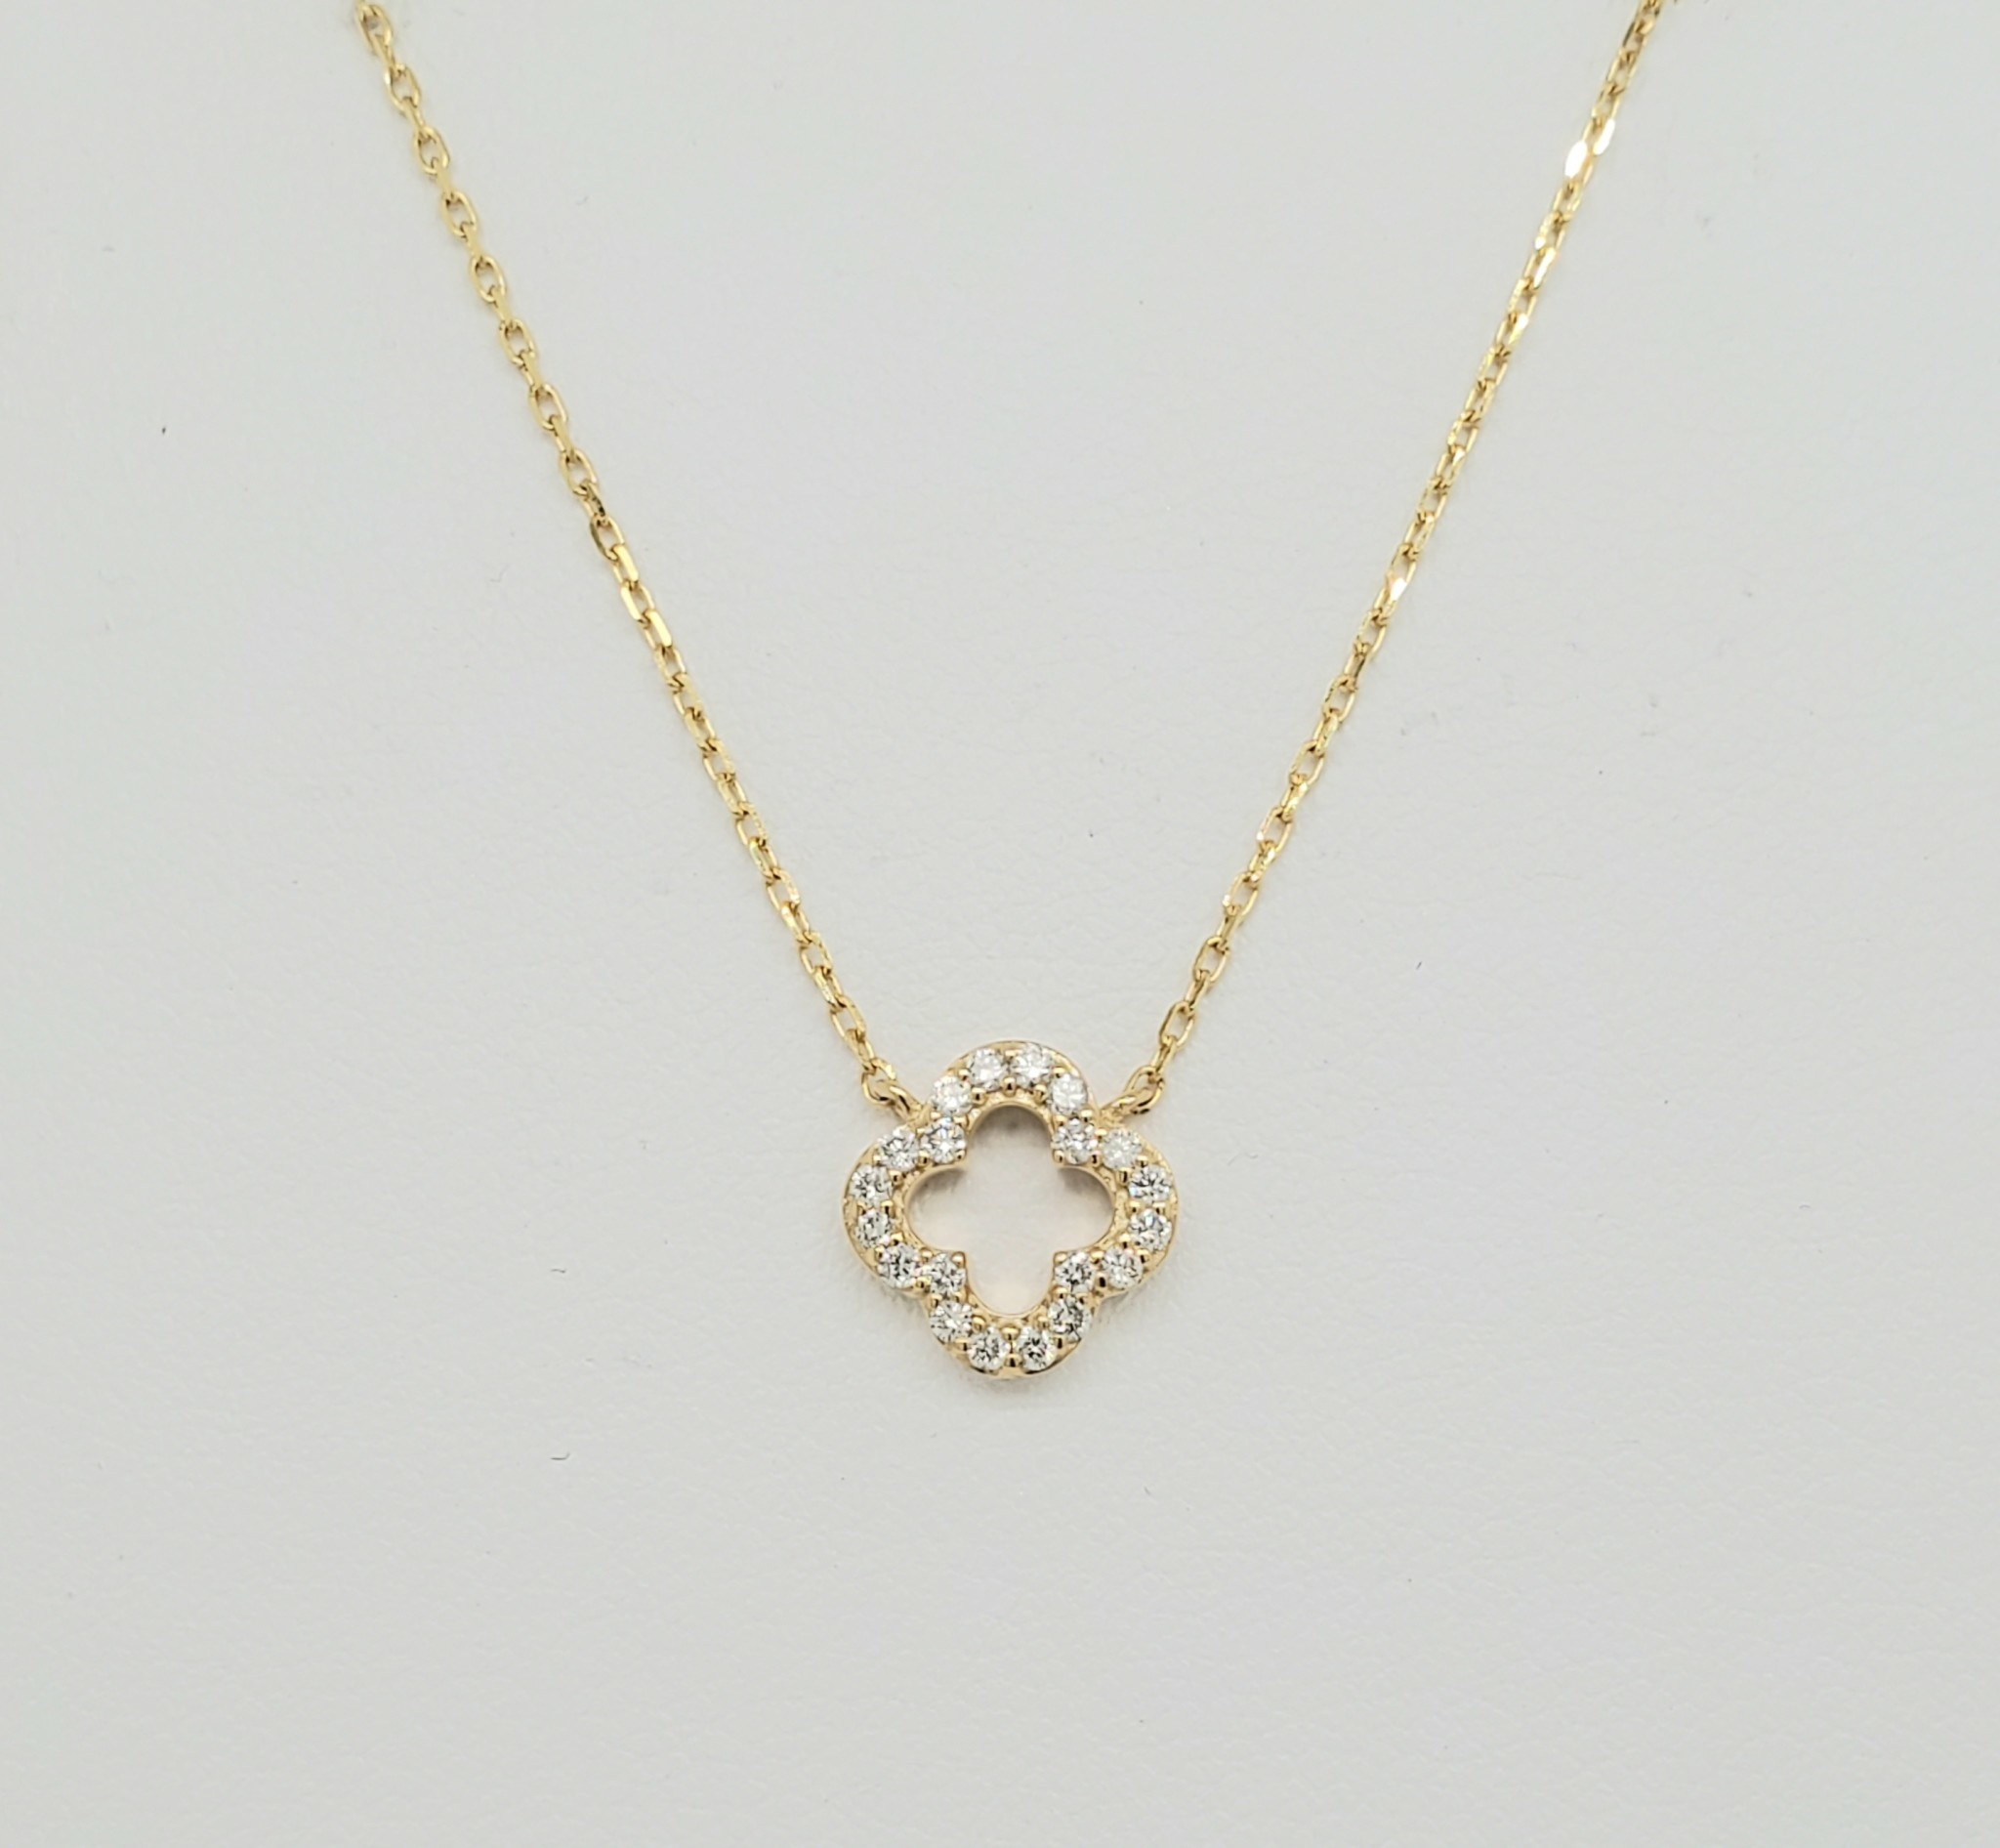 14KT Yellow Gold 4-Leaf Clover Diamond Necklace 0.15 CTW